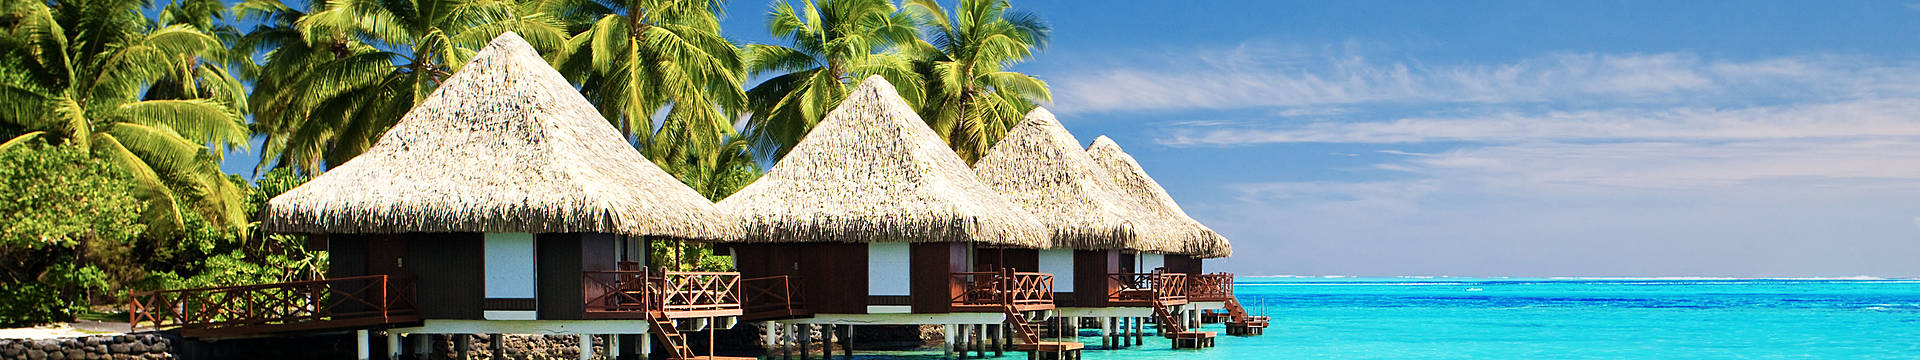 The Maldives vacations